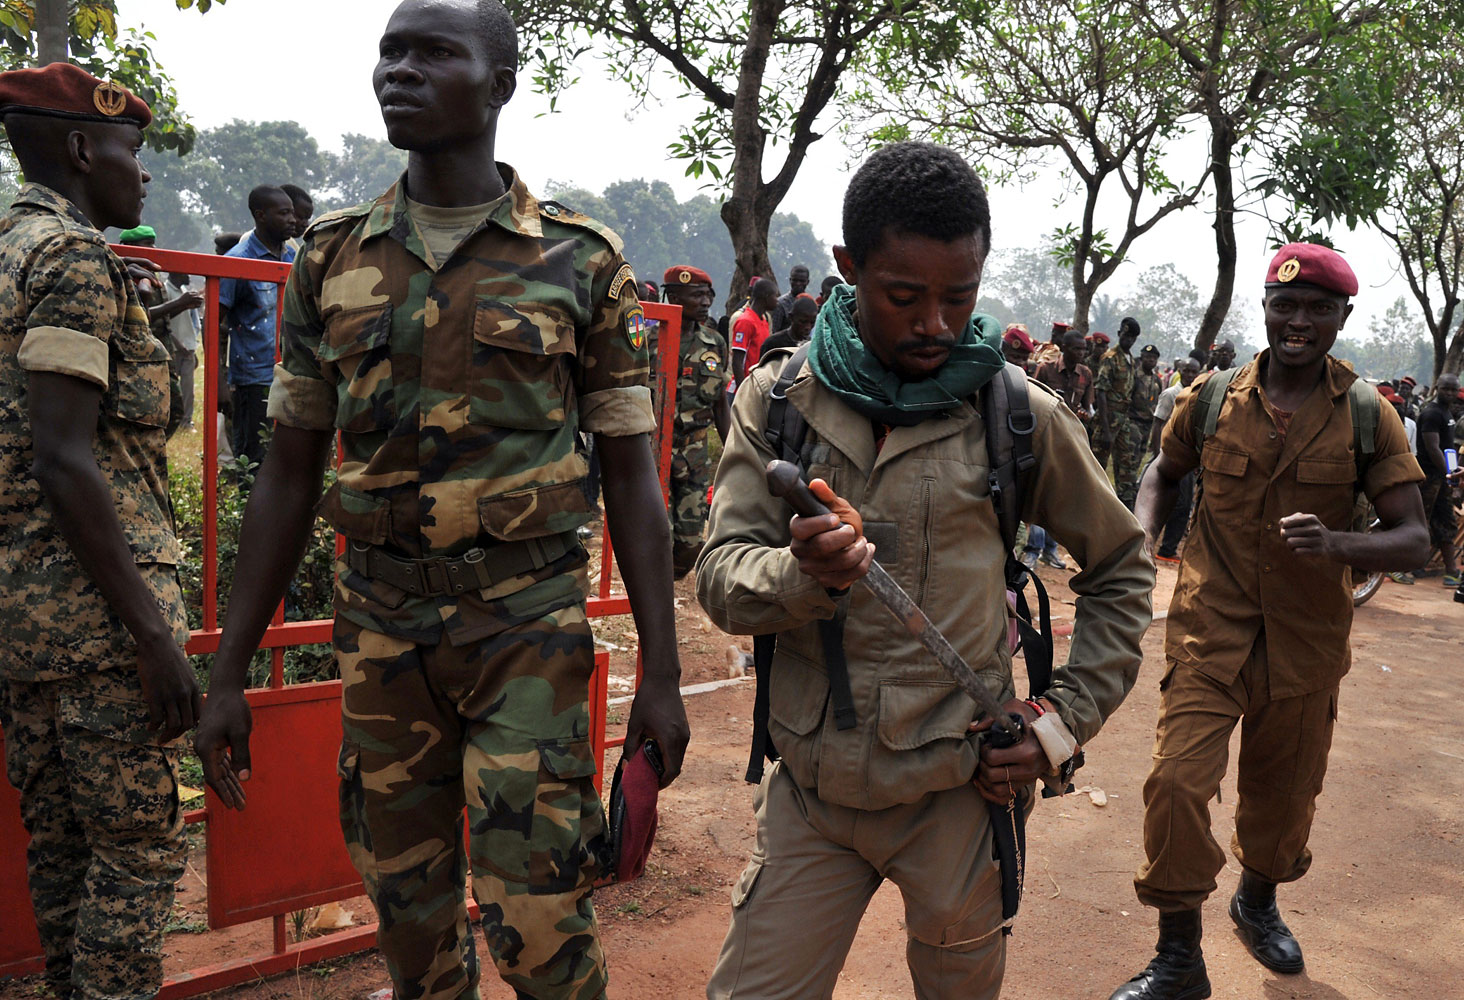 A member of the Central African Armed Forces puts his knife away after taking part in the lynching of a man suspected of being a former Seleka rebel on Feb. 5, 2014, in Bangui.